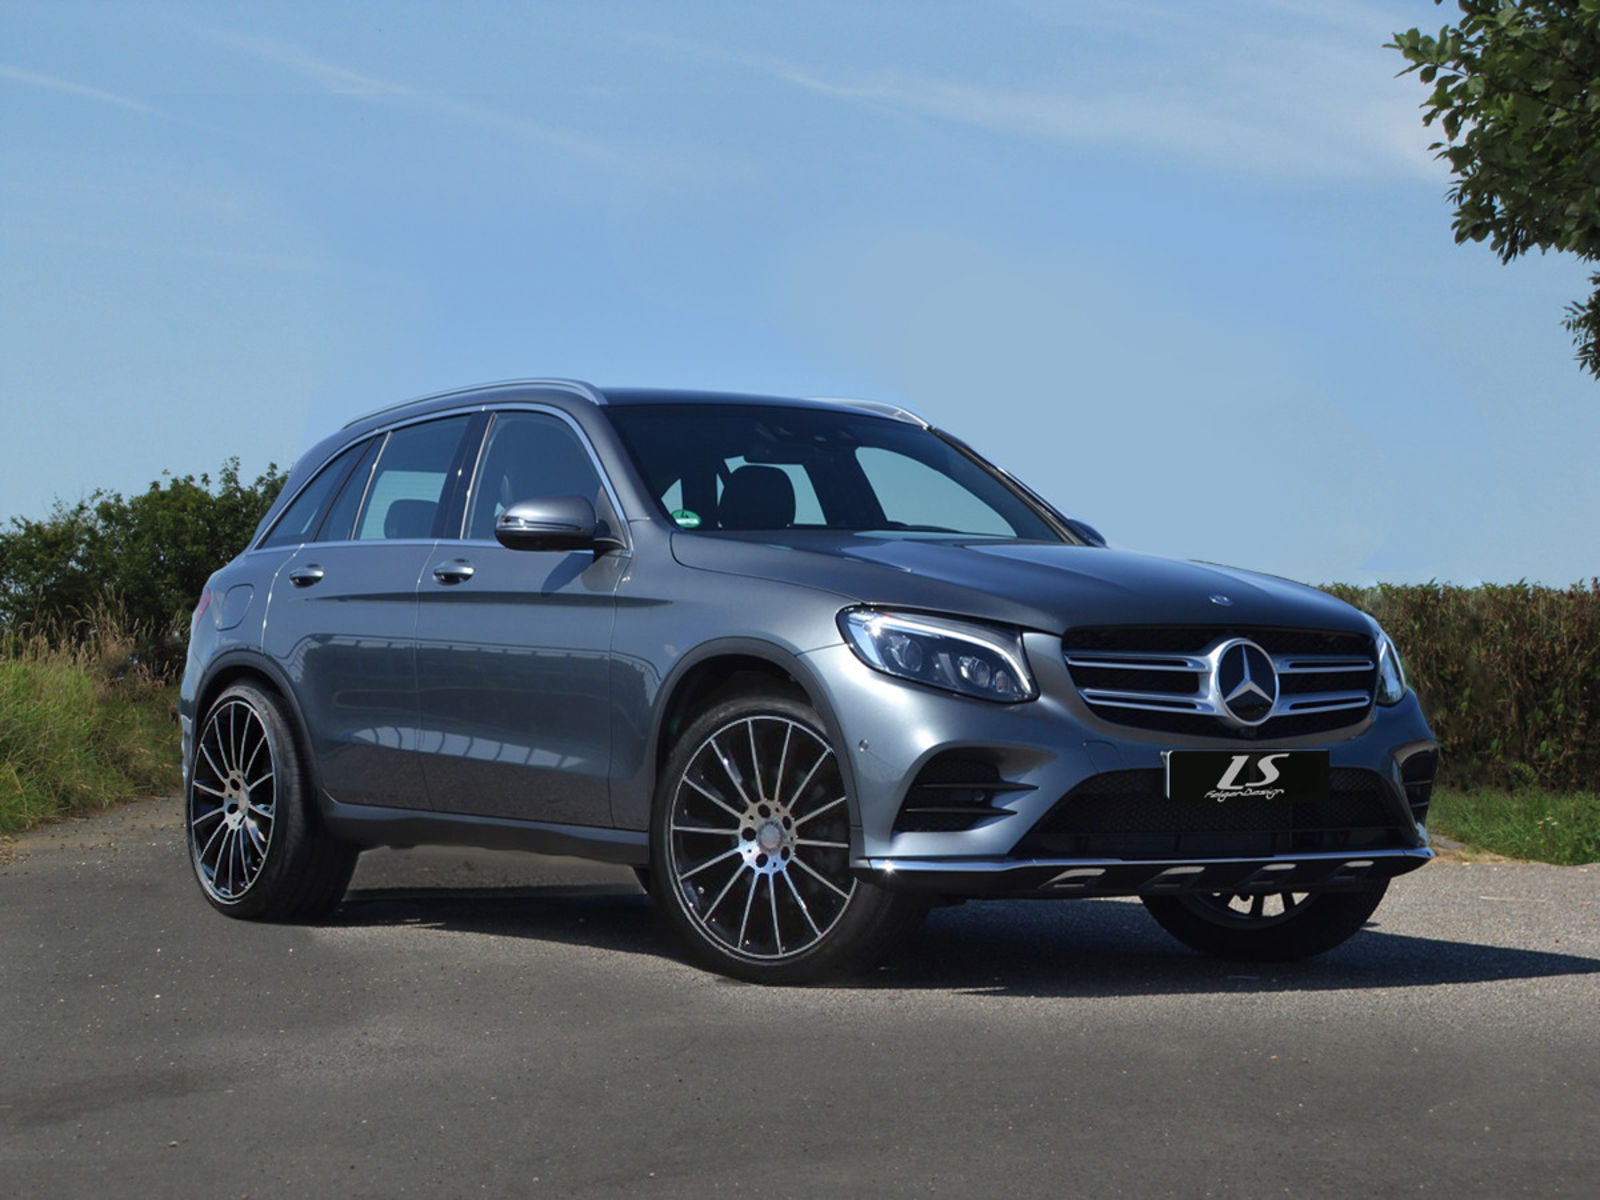 news alufelgen mercedes glc w253 204x amg 20zoll. Black Bedroom Furniture Sets. Home Design Ideas